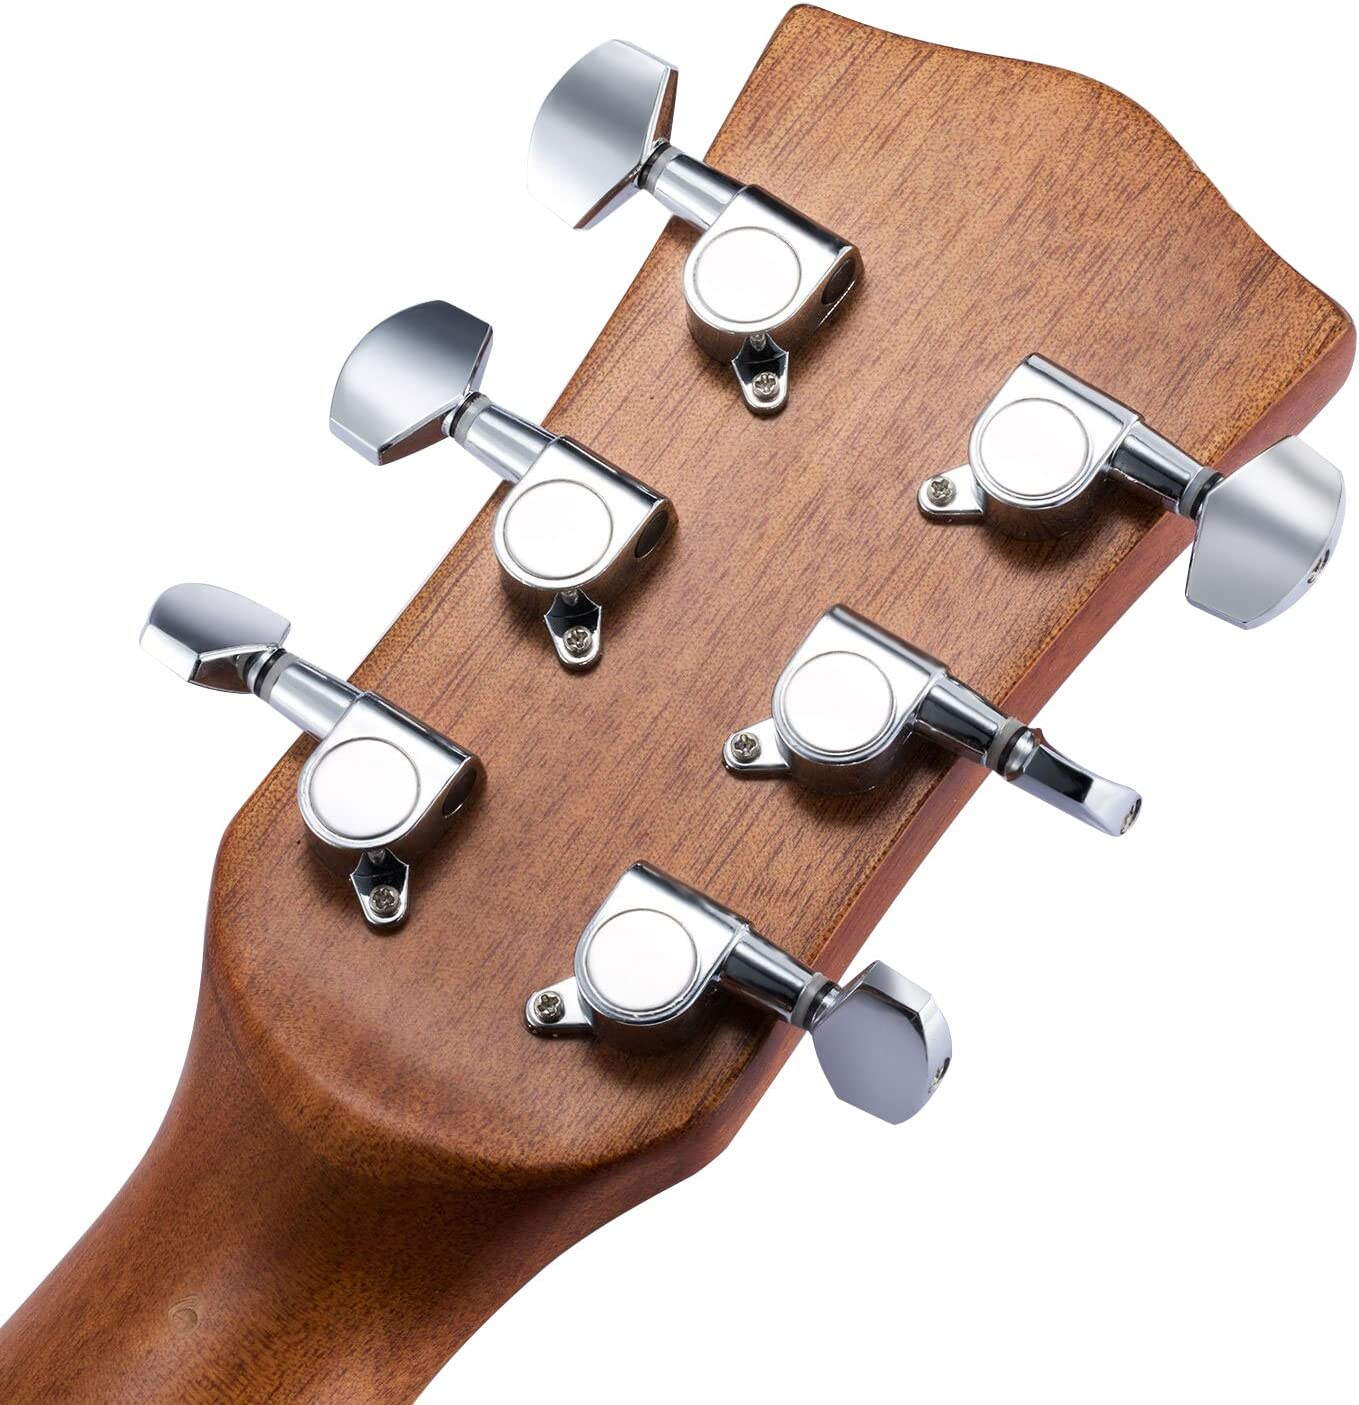 Silver Picks and Guitar String Winder for Electric or Acoustic Guitar Canomo 6 Pieces Sealed Guitar String Tuning Pegs Keys 3 Left 3 Right Guitar Machine Heads Knobs With Strap Button Locks